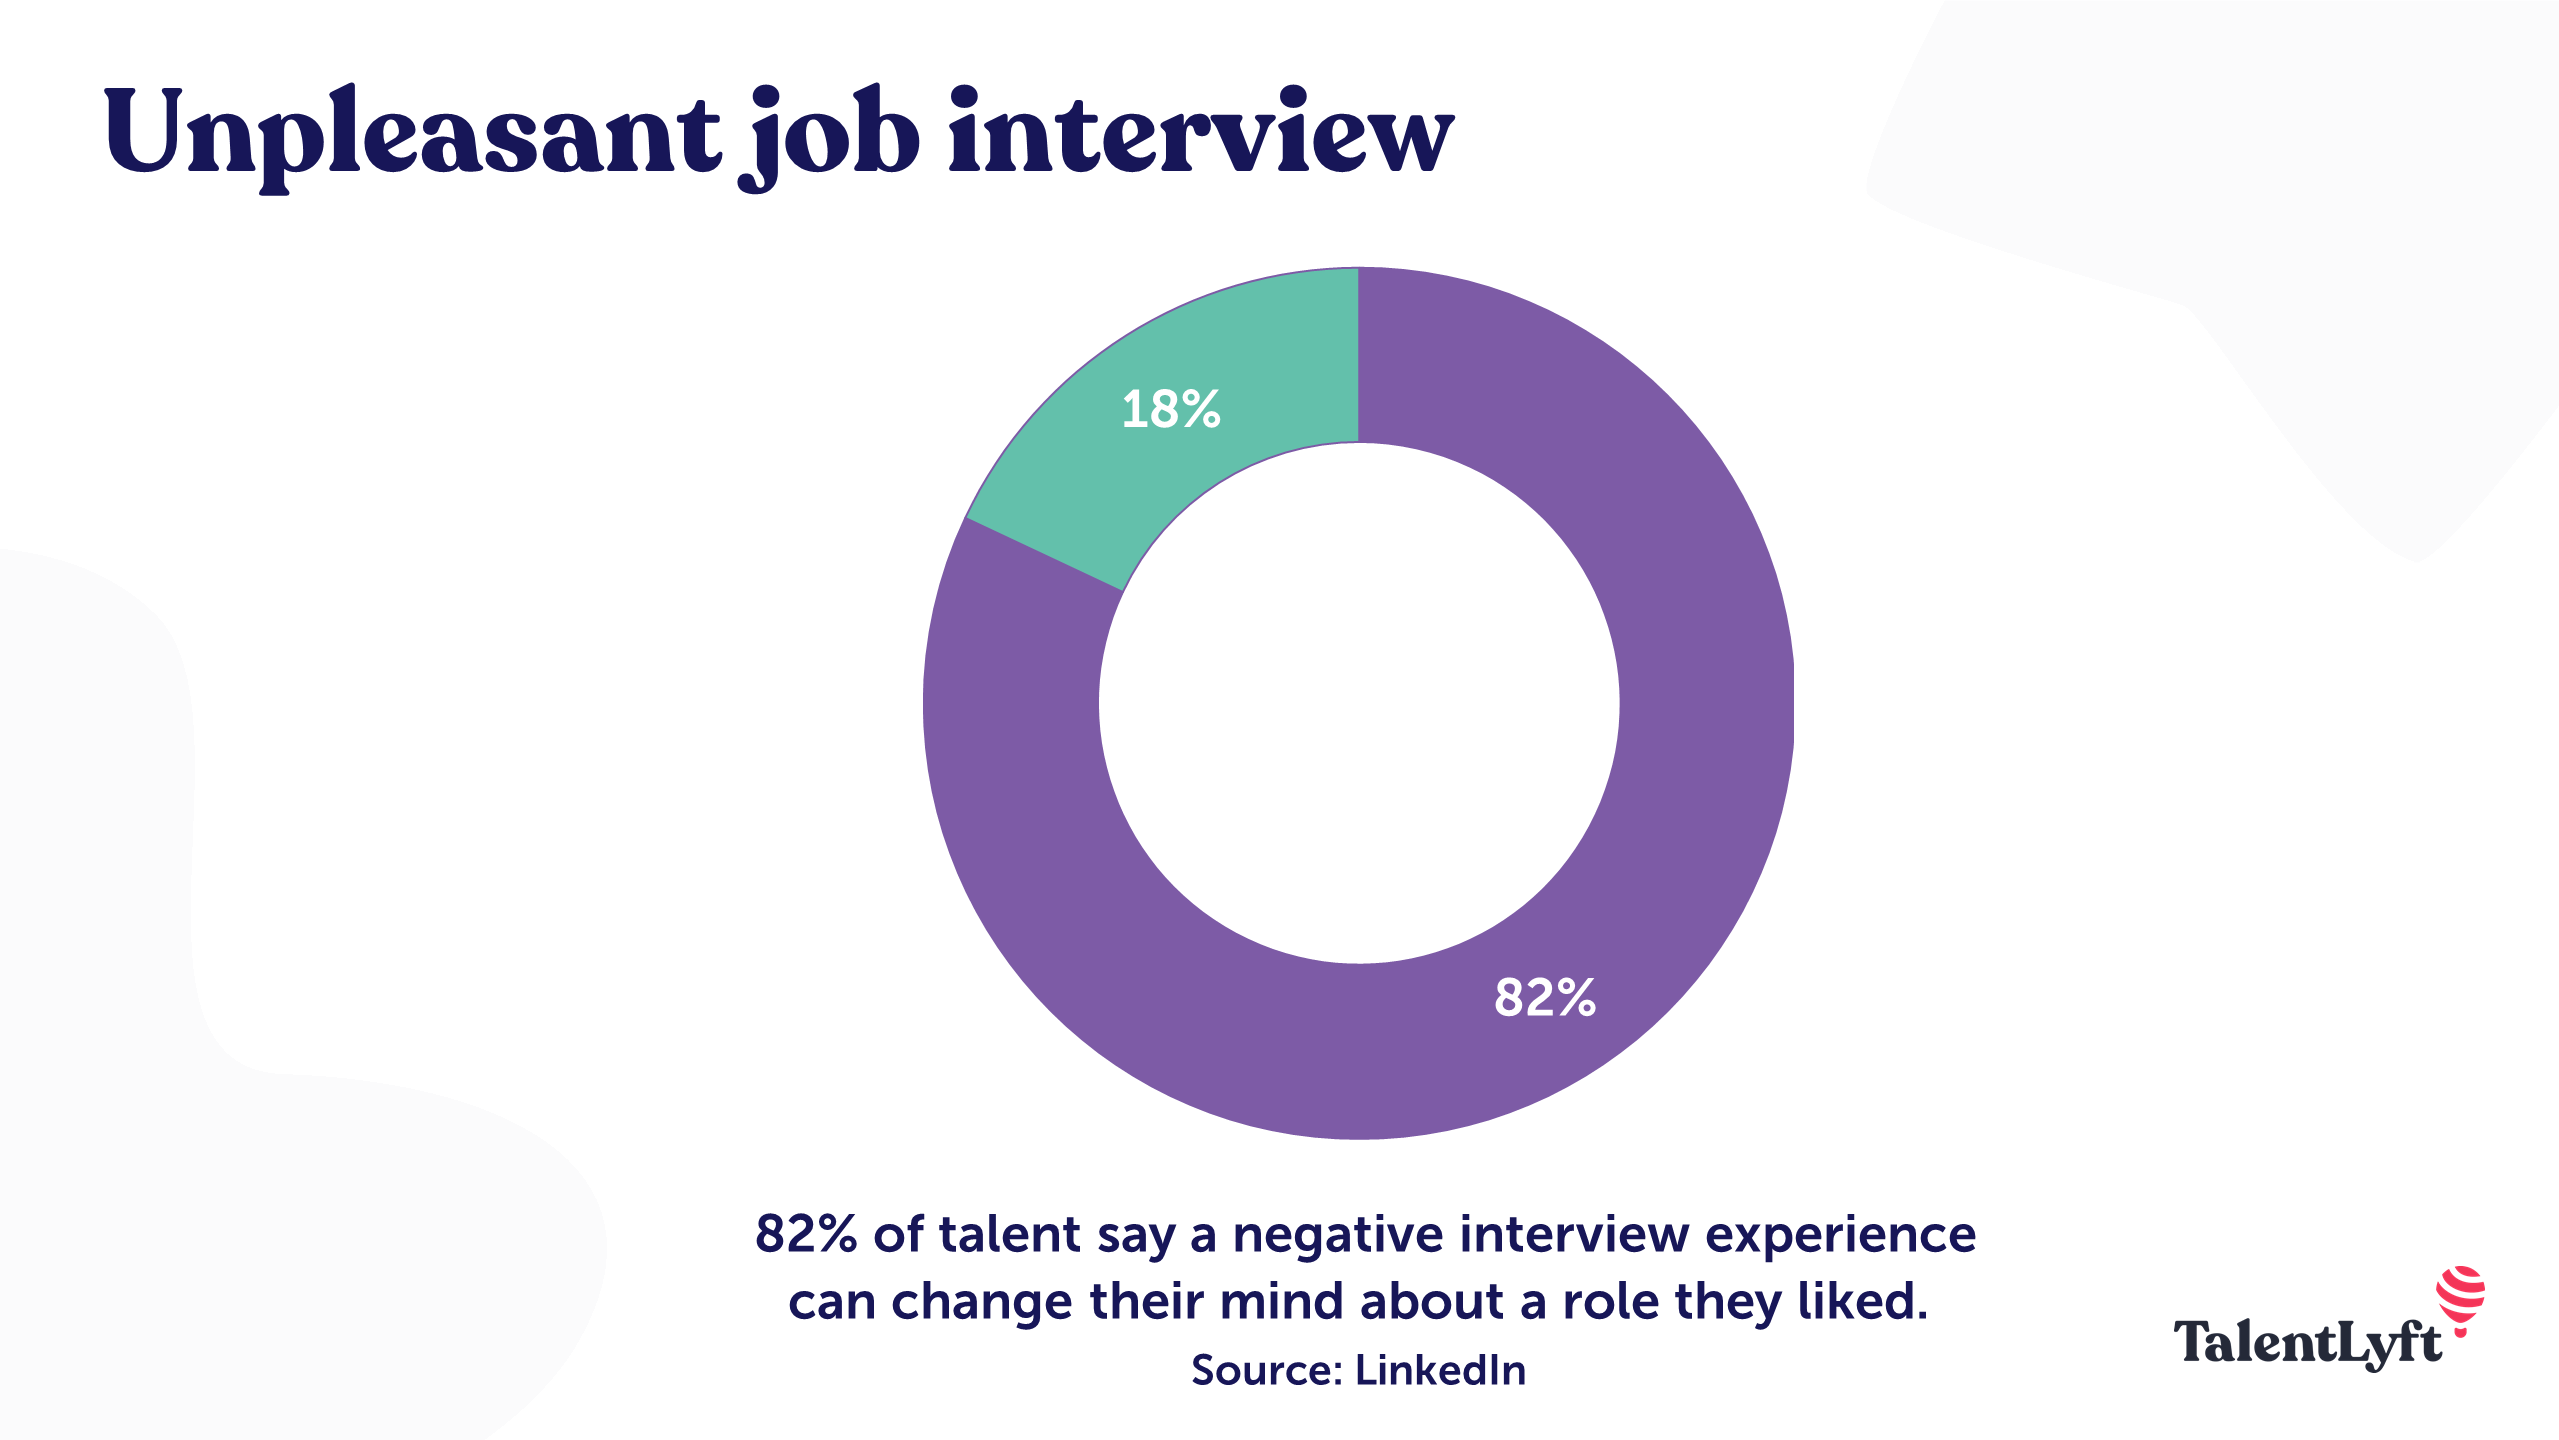 Unpleasant job interview experience